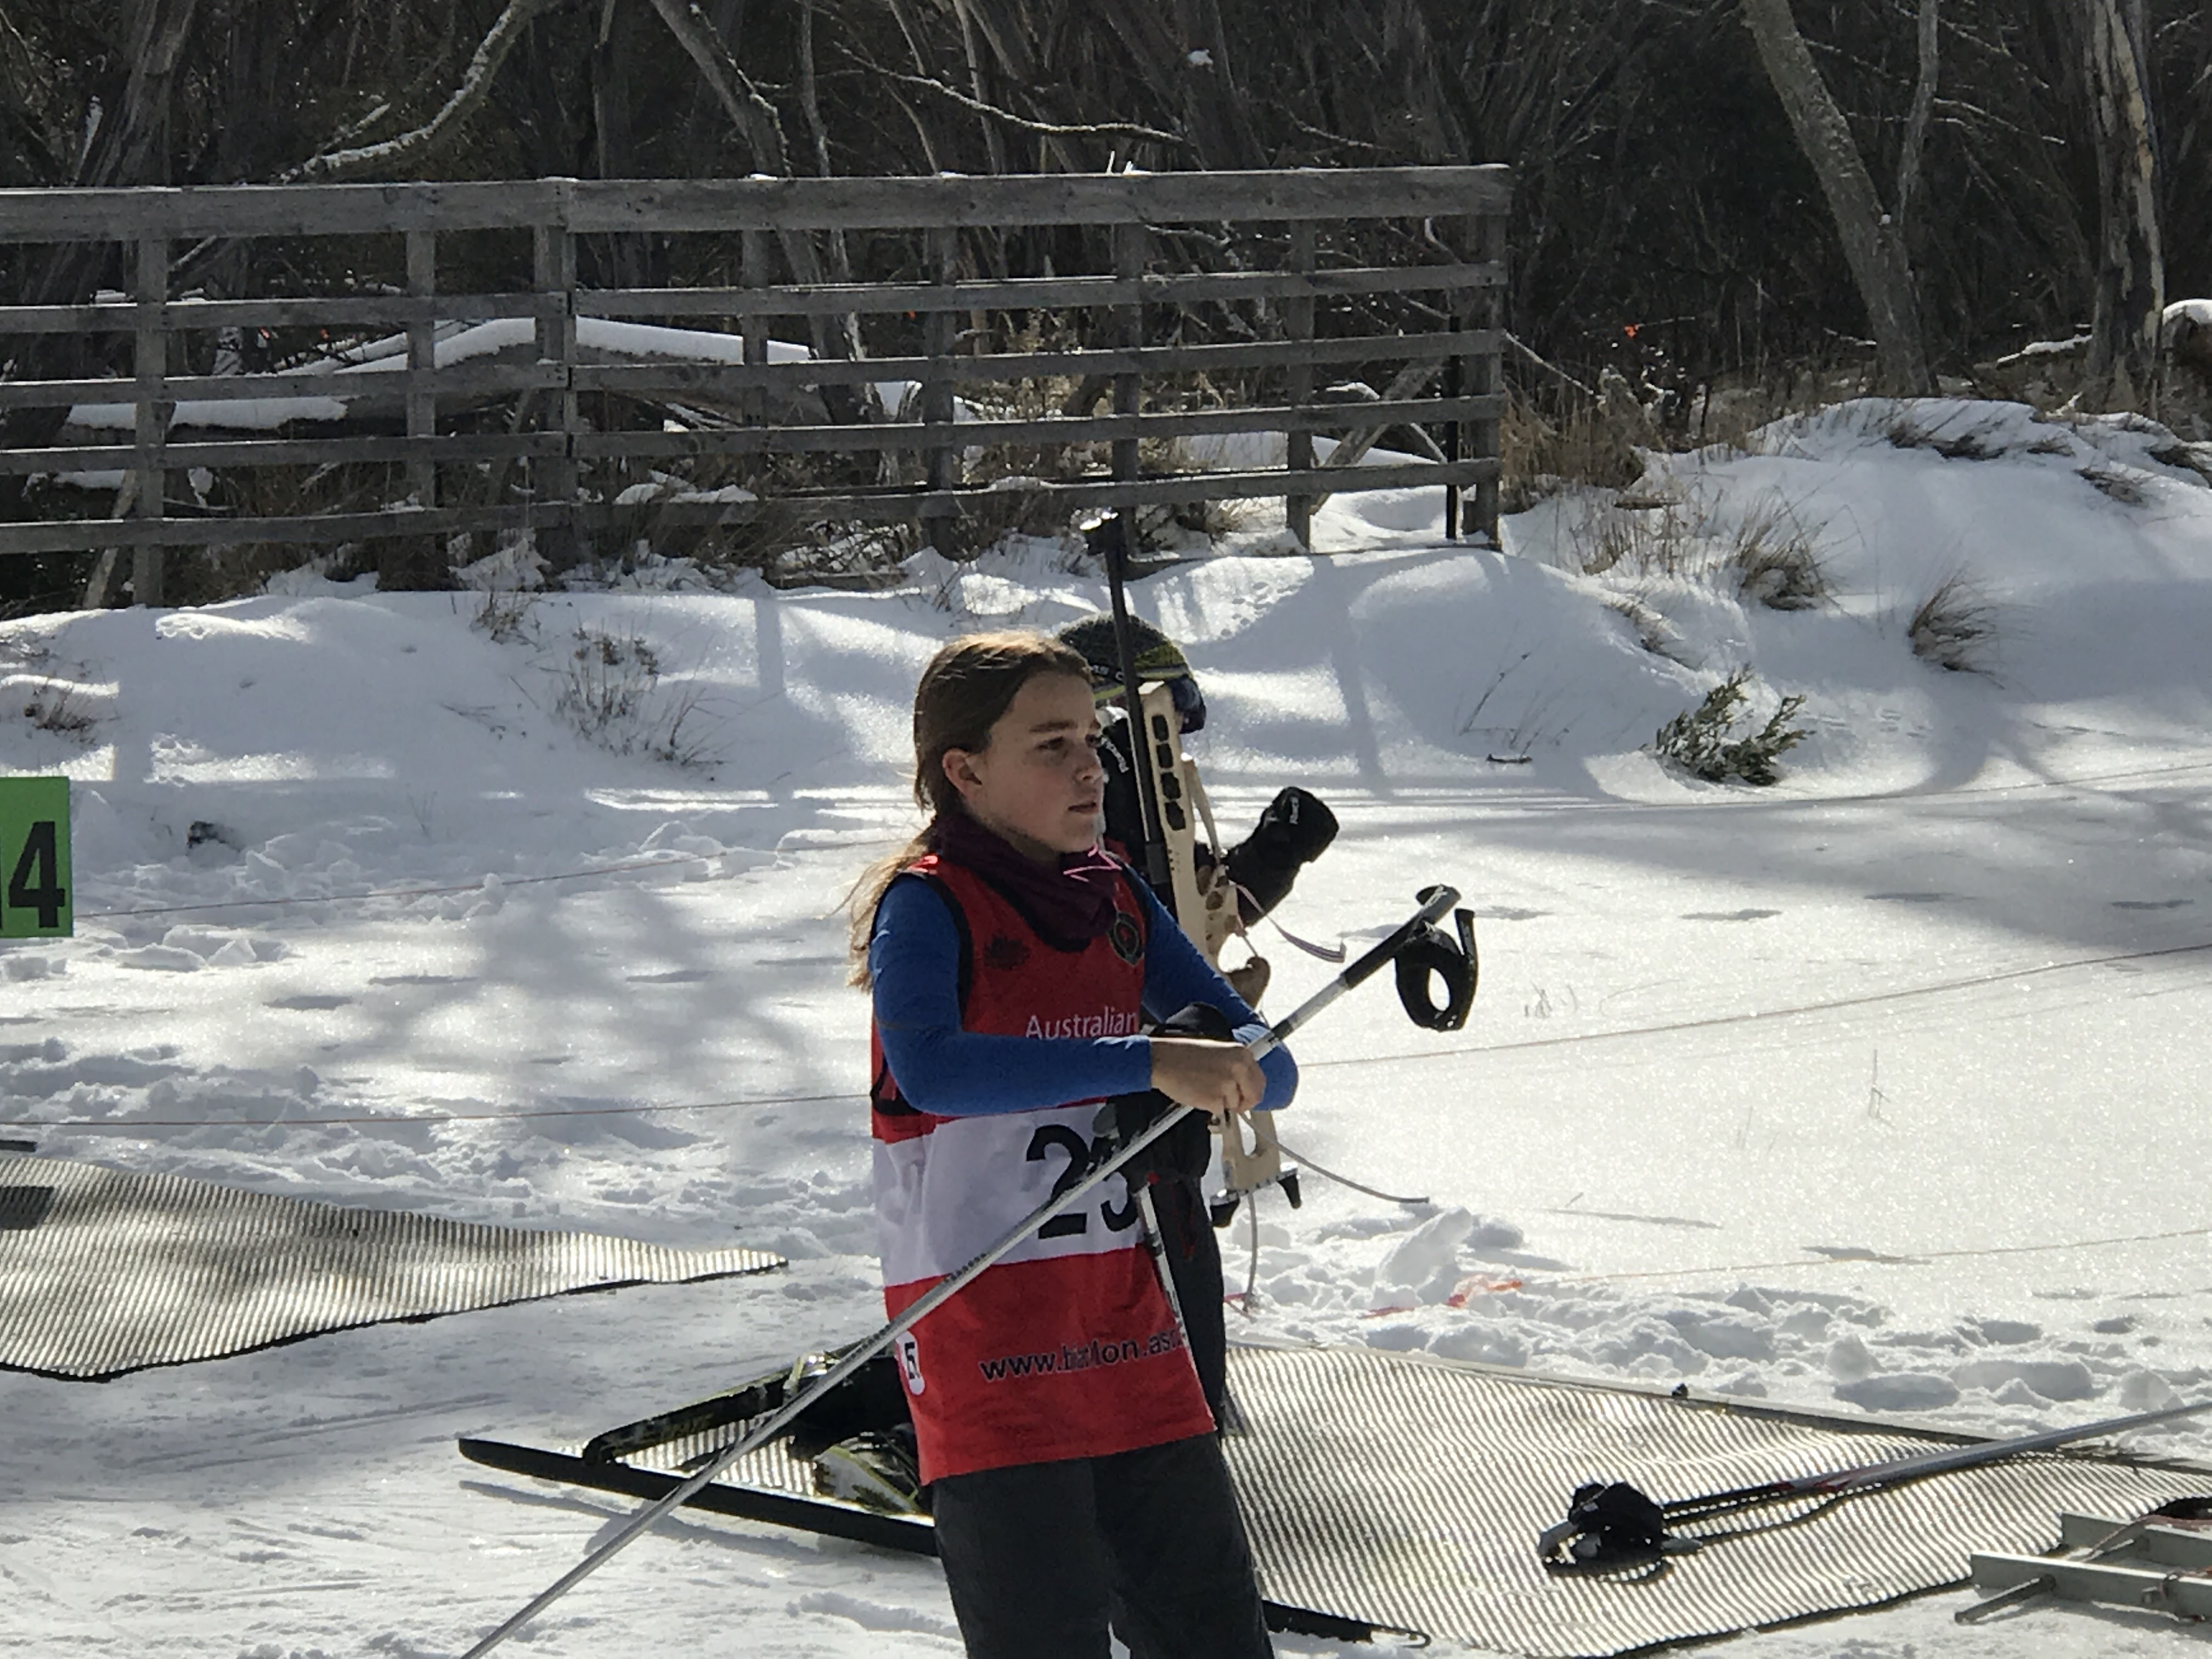 isabelle skiing into the range 2